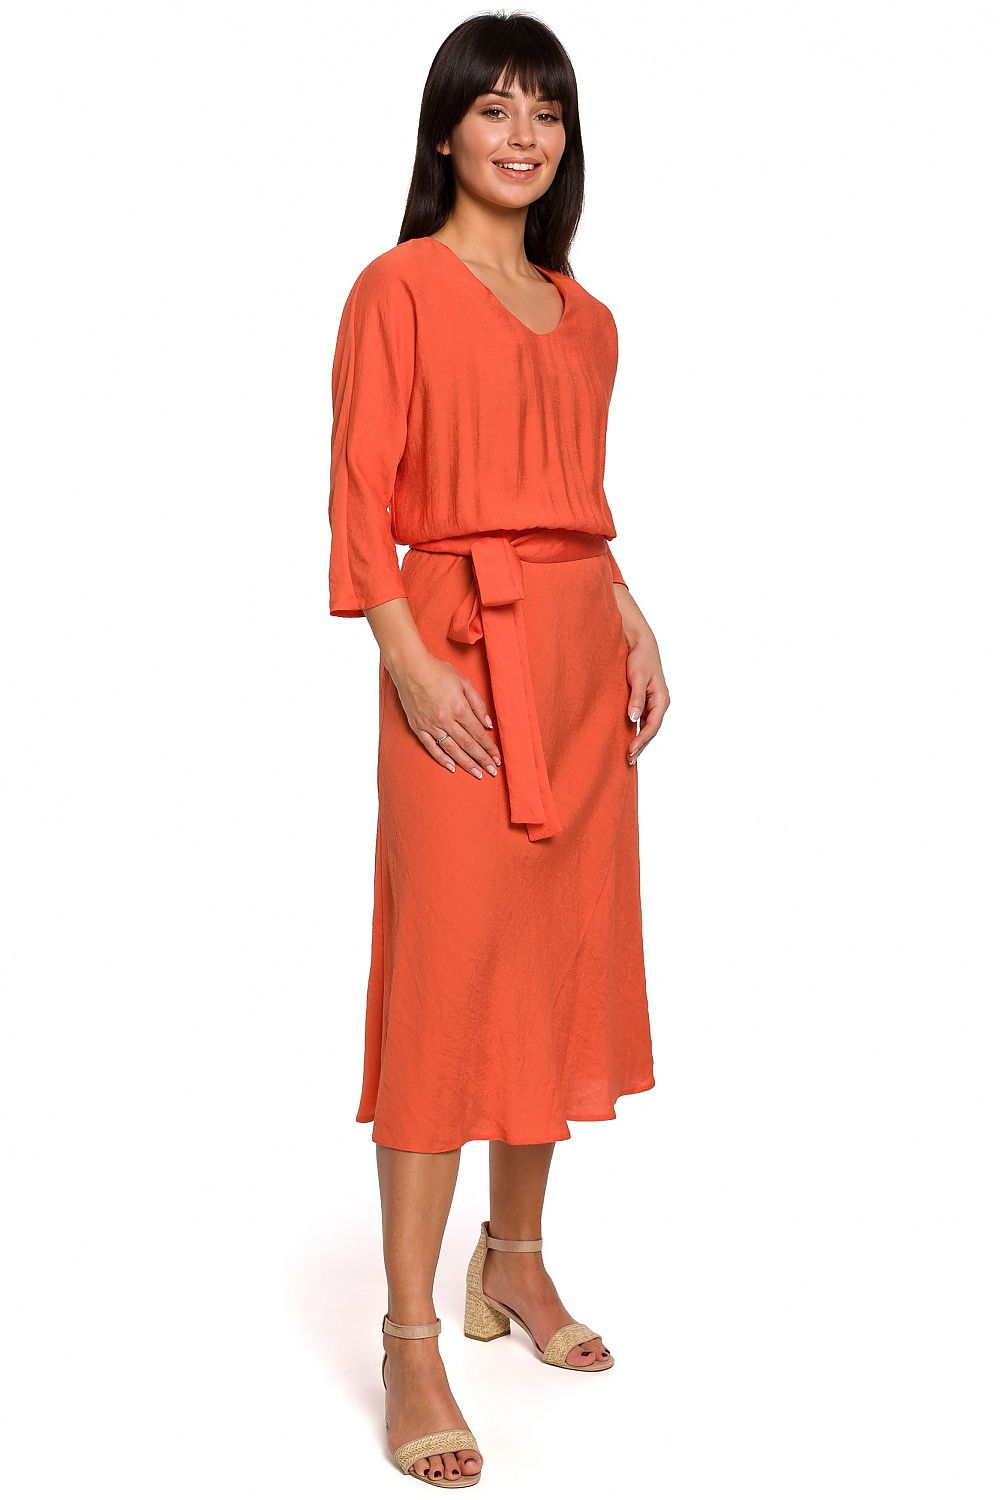 Orange Midi Belted Dress 141460